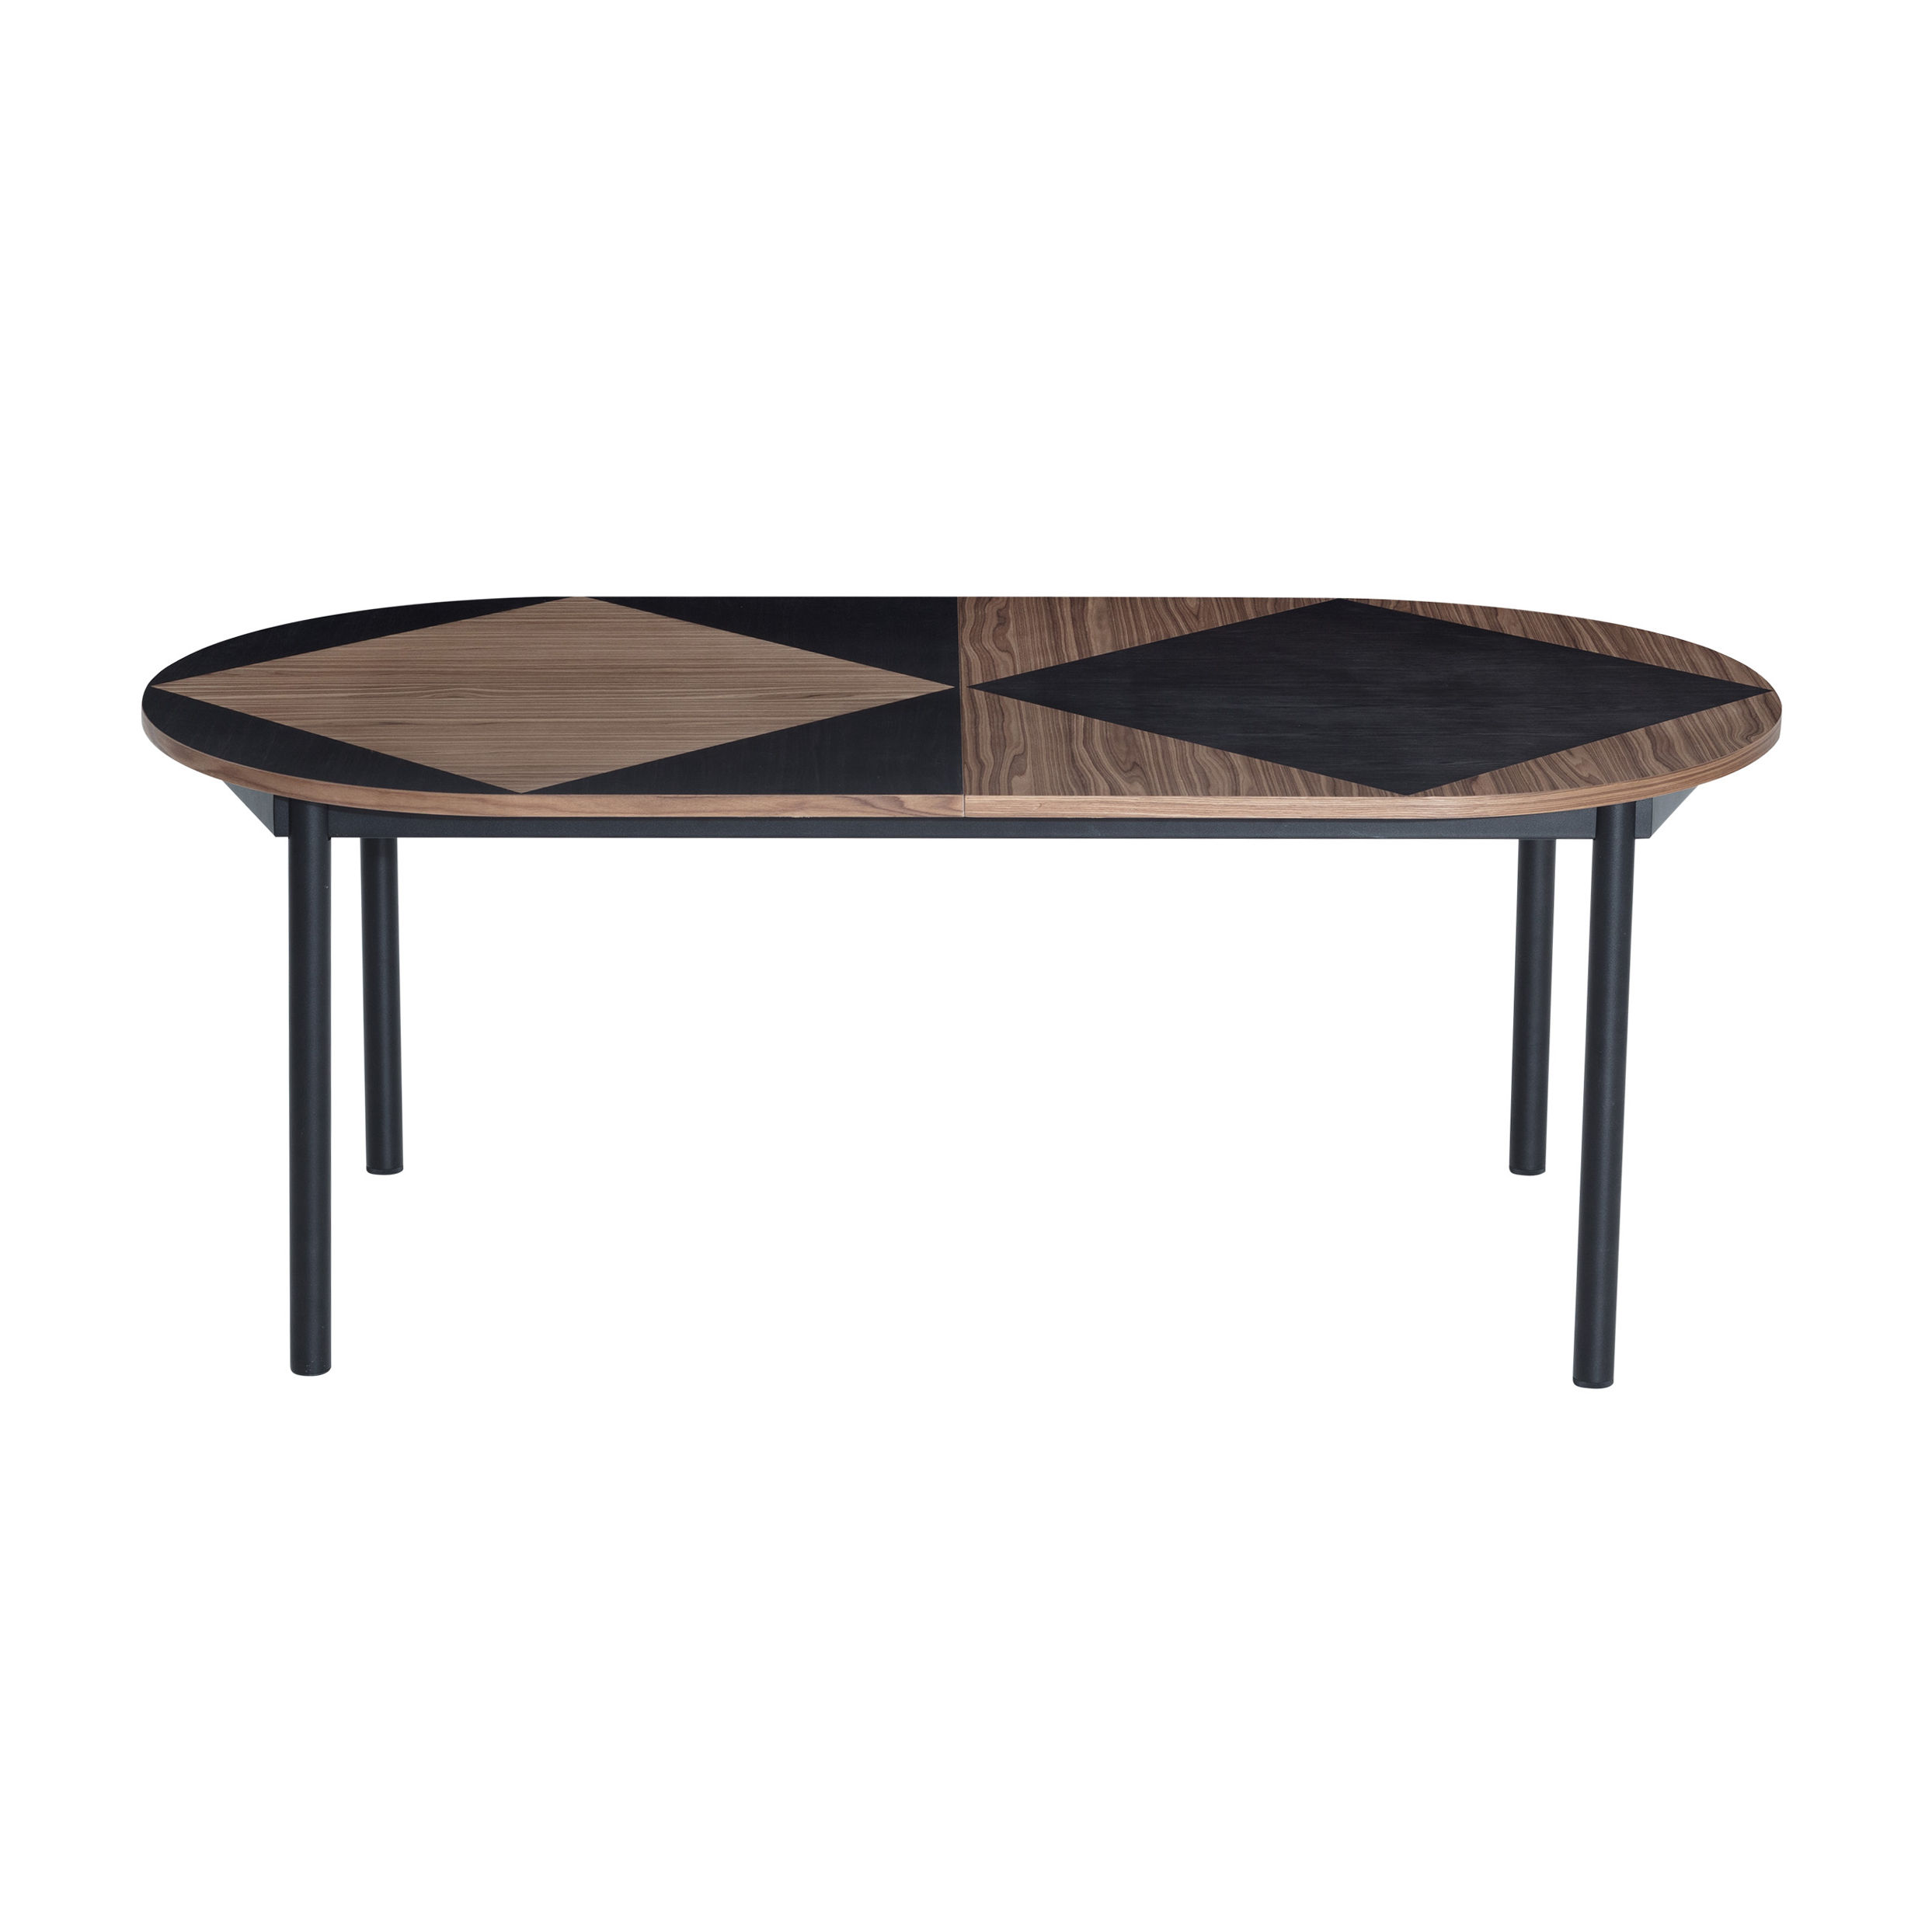 Furniture - Dining Tables - Tavla Extending table - / Oval - L 200-300 cm / Walnut inlay by Petite Friture - Walnut & black - Lacquered steel, Walnut